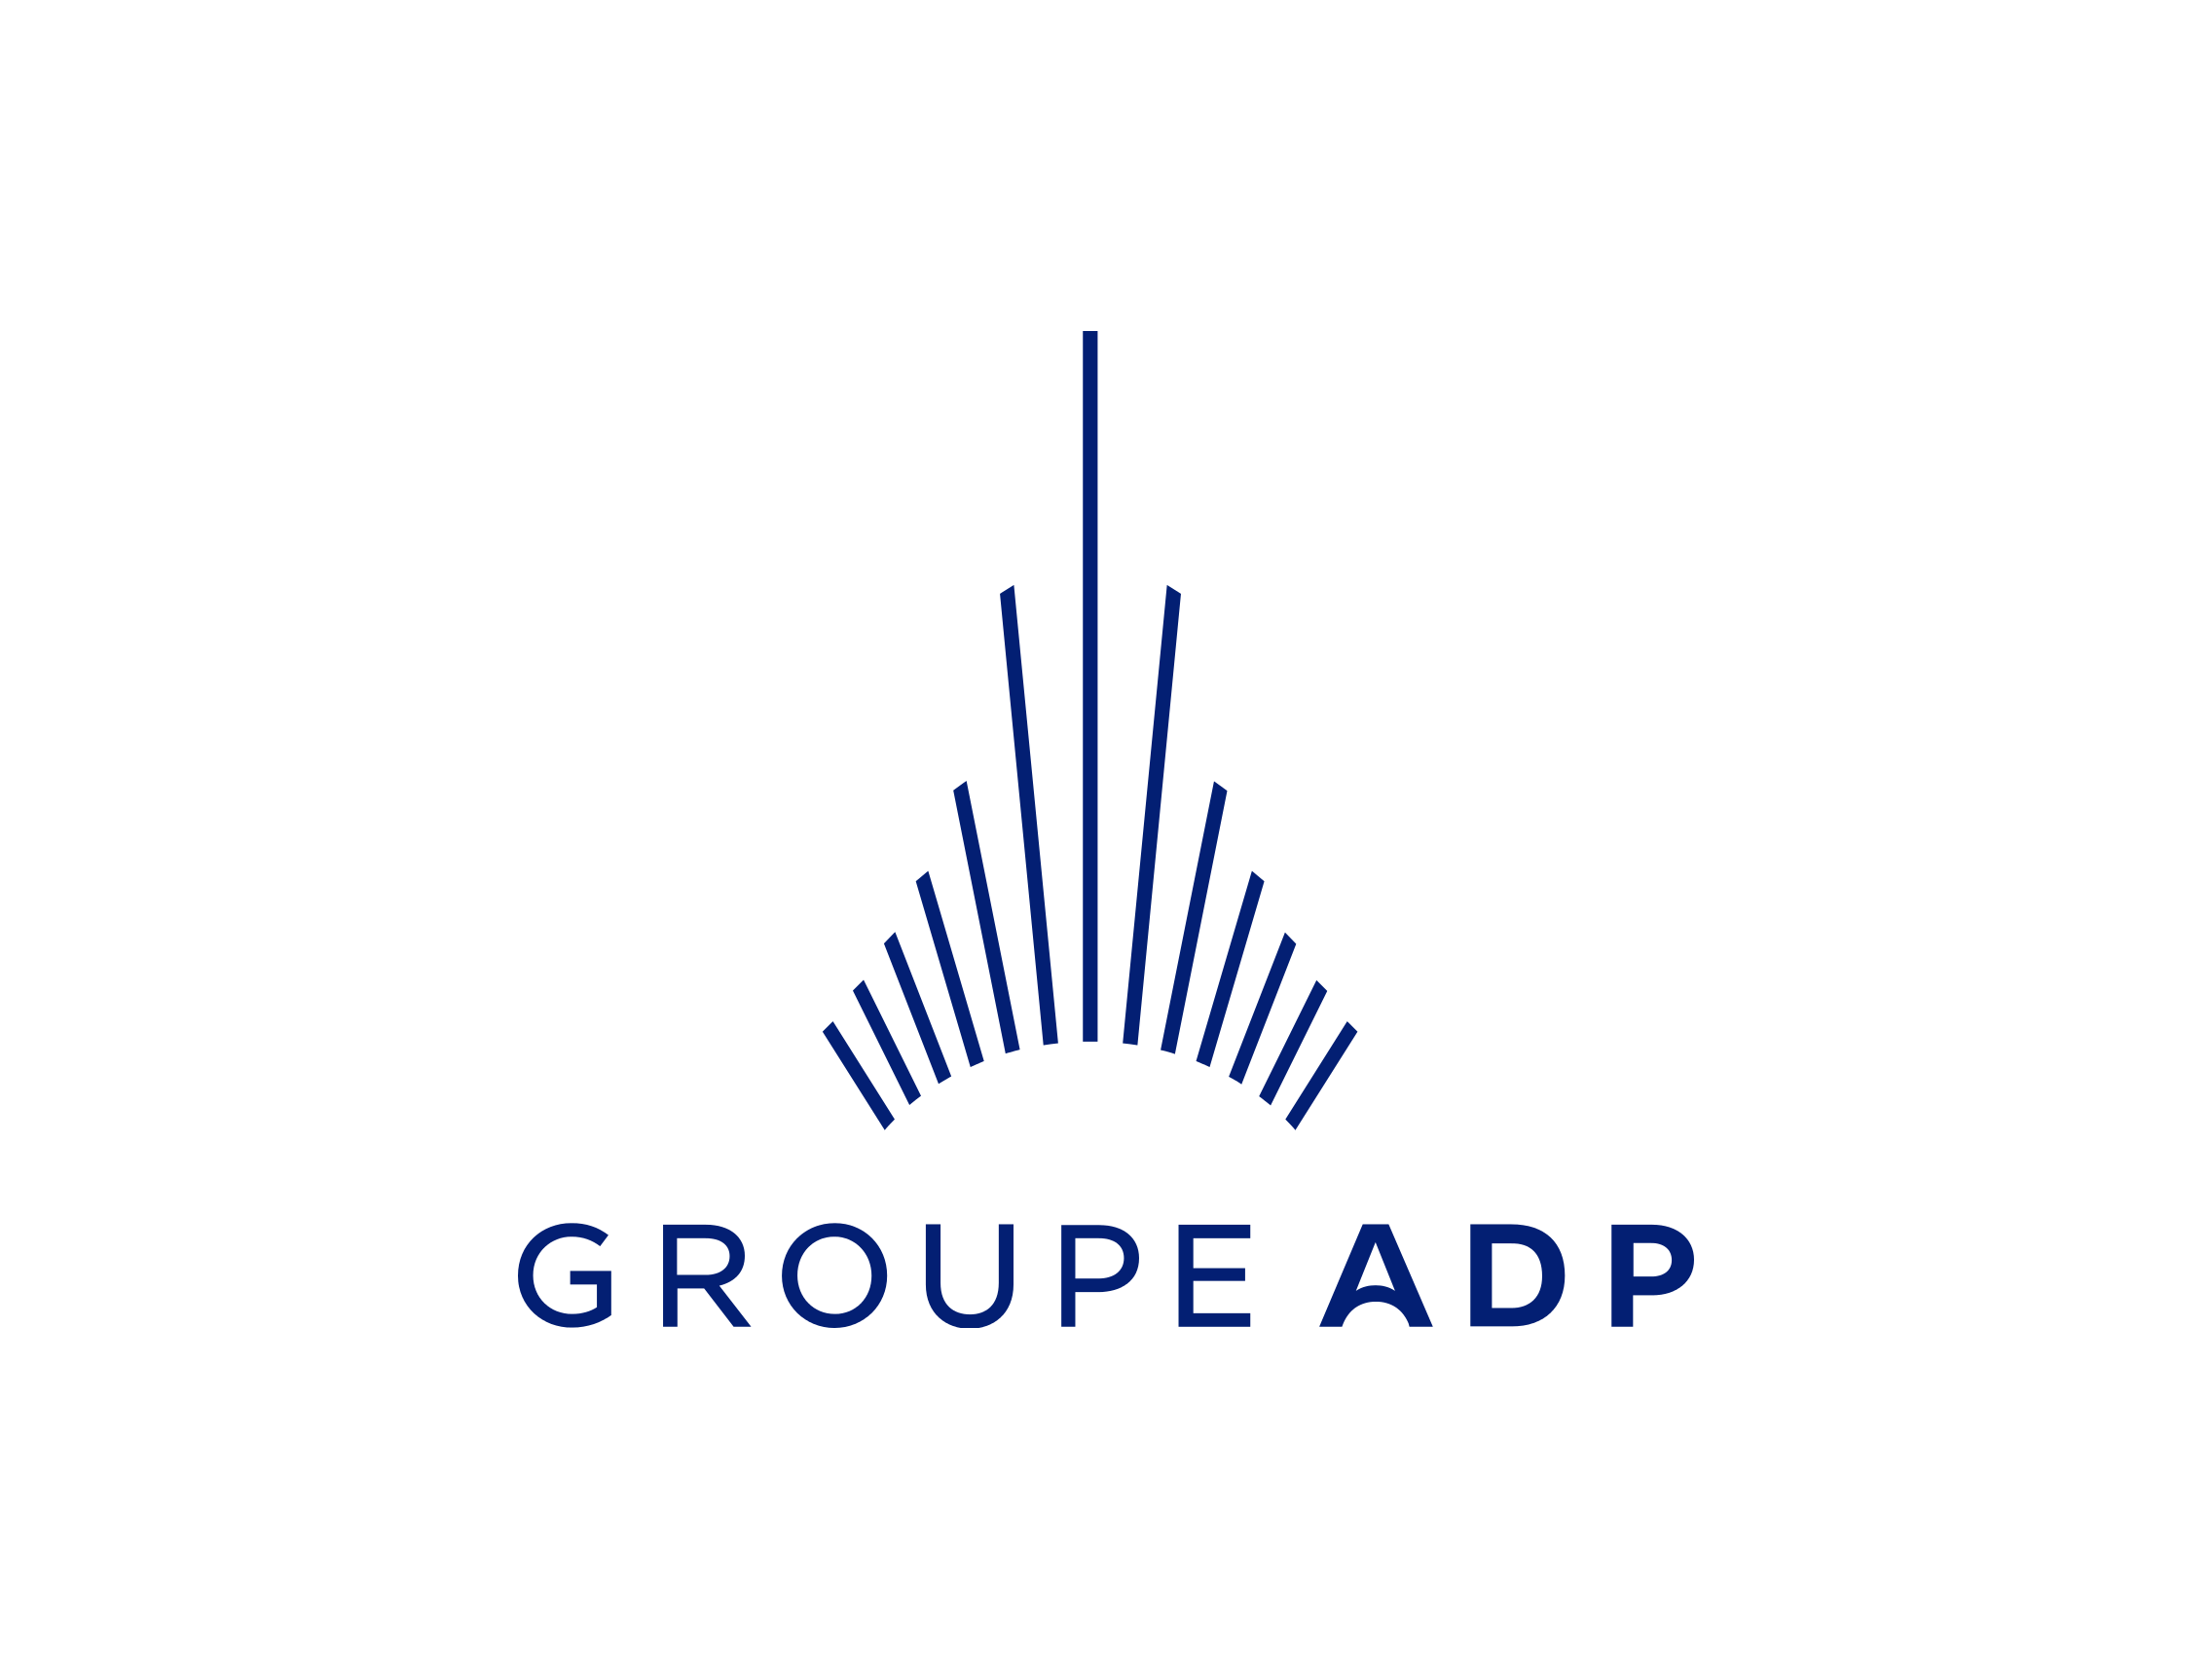 groupe adp logo png #6420